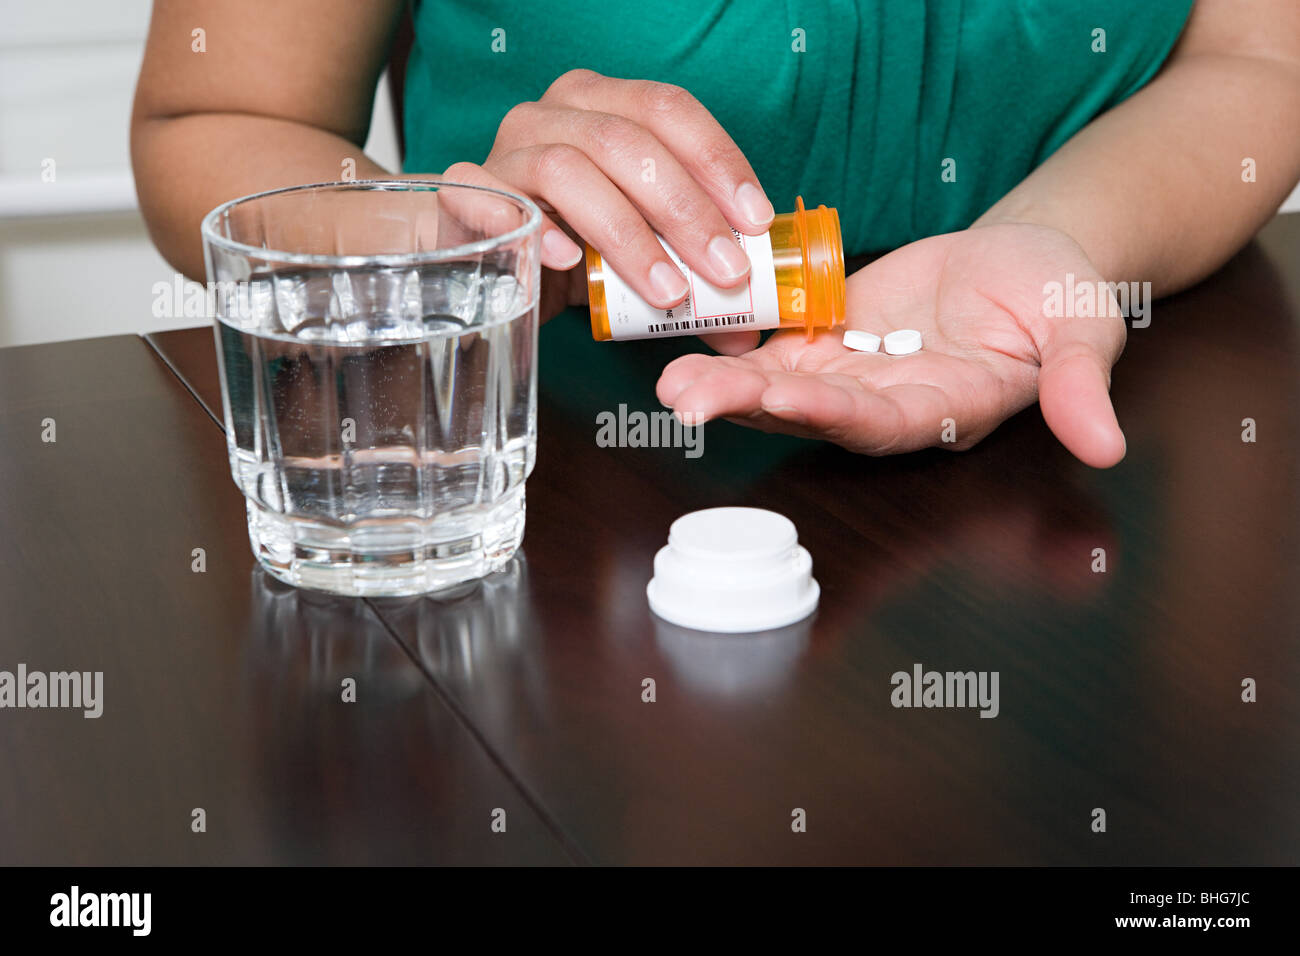 Woman taking tablets - Stock Image